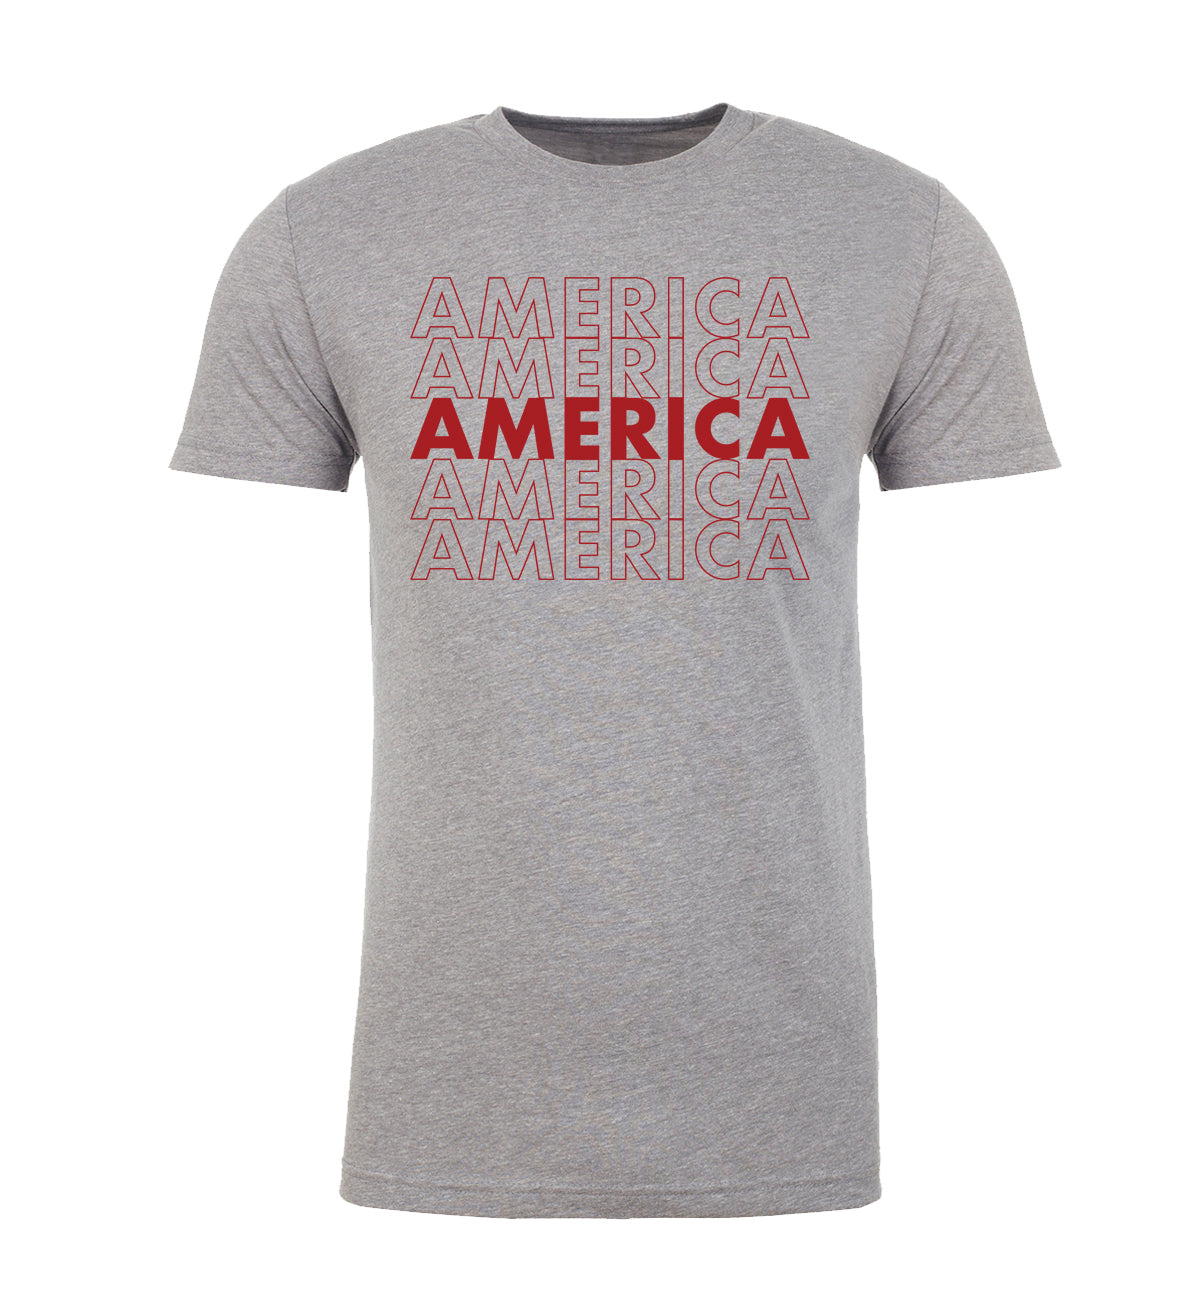 Shirt - Men's America T-shirts, USA Shirts, Patriotic Shirts For Men